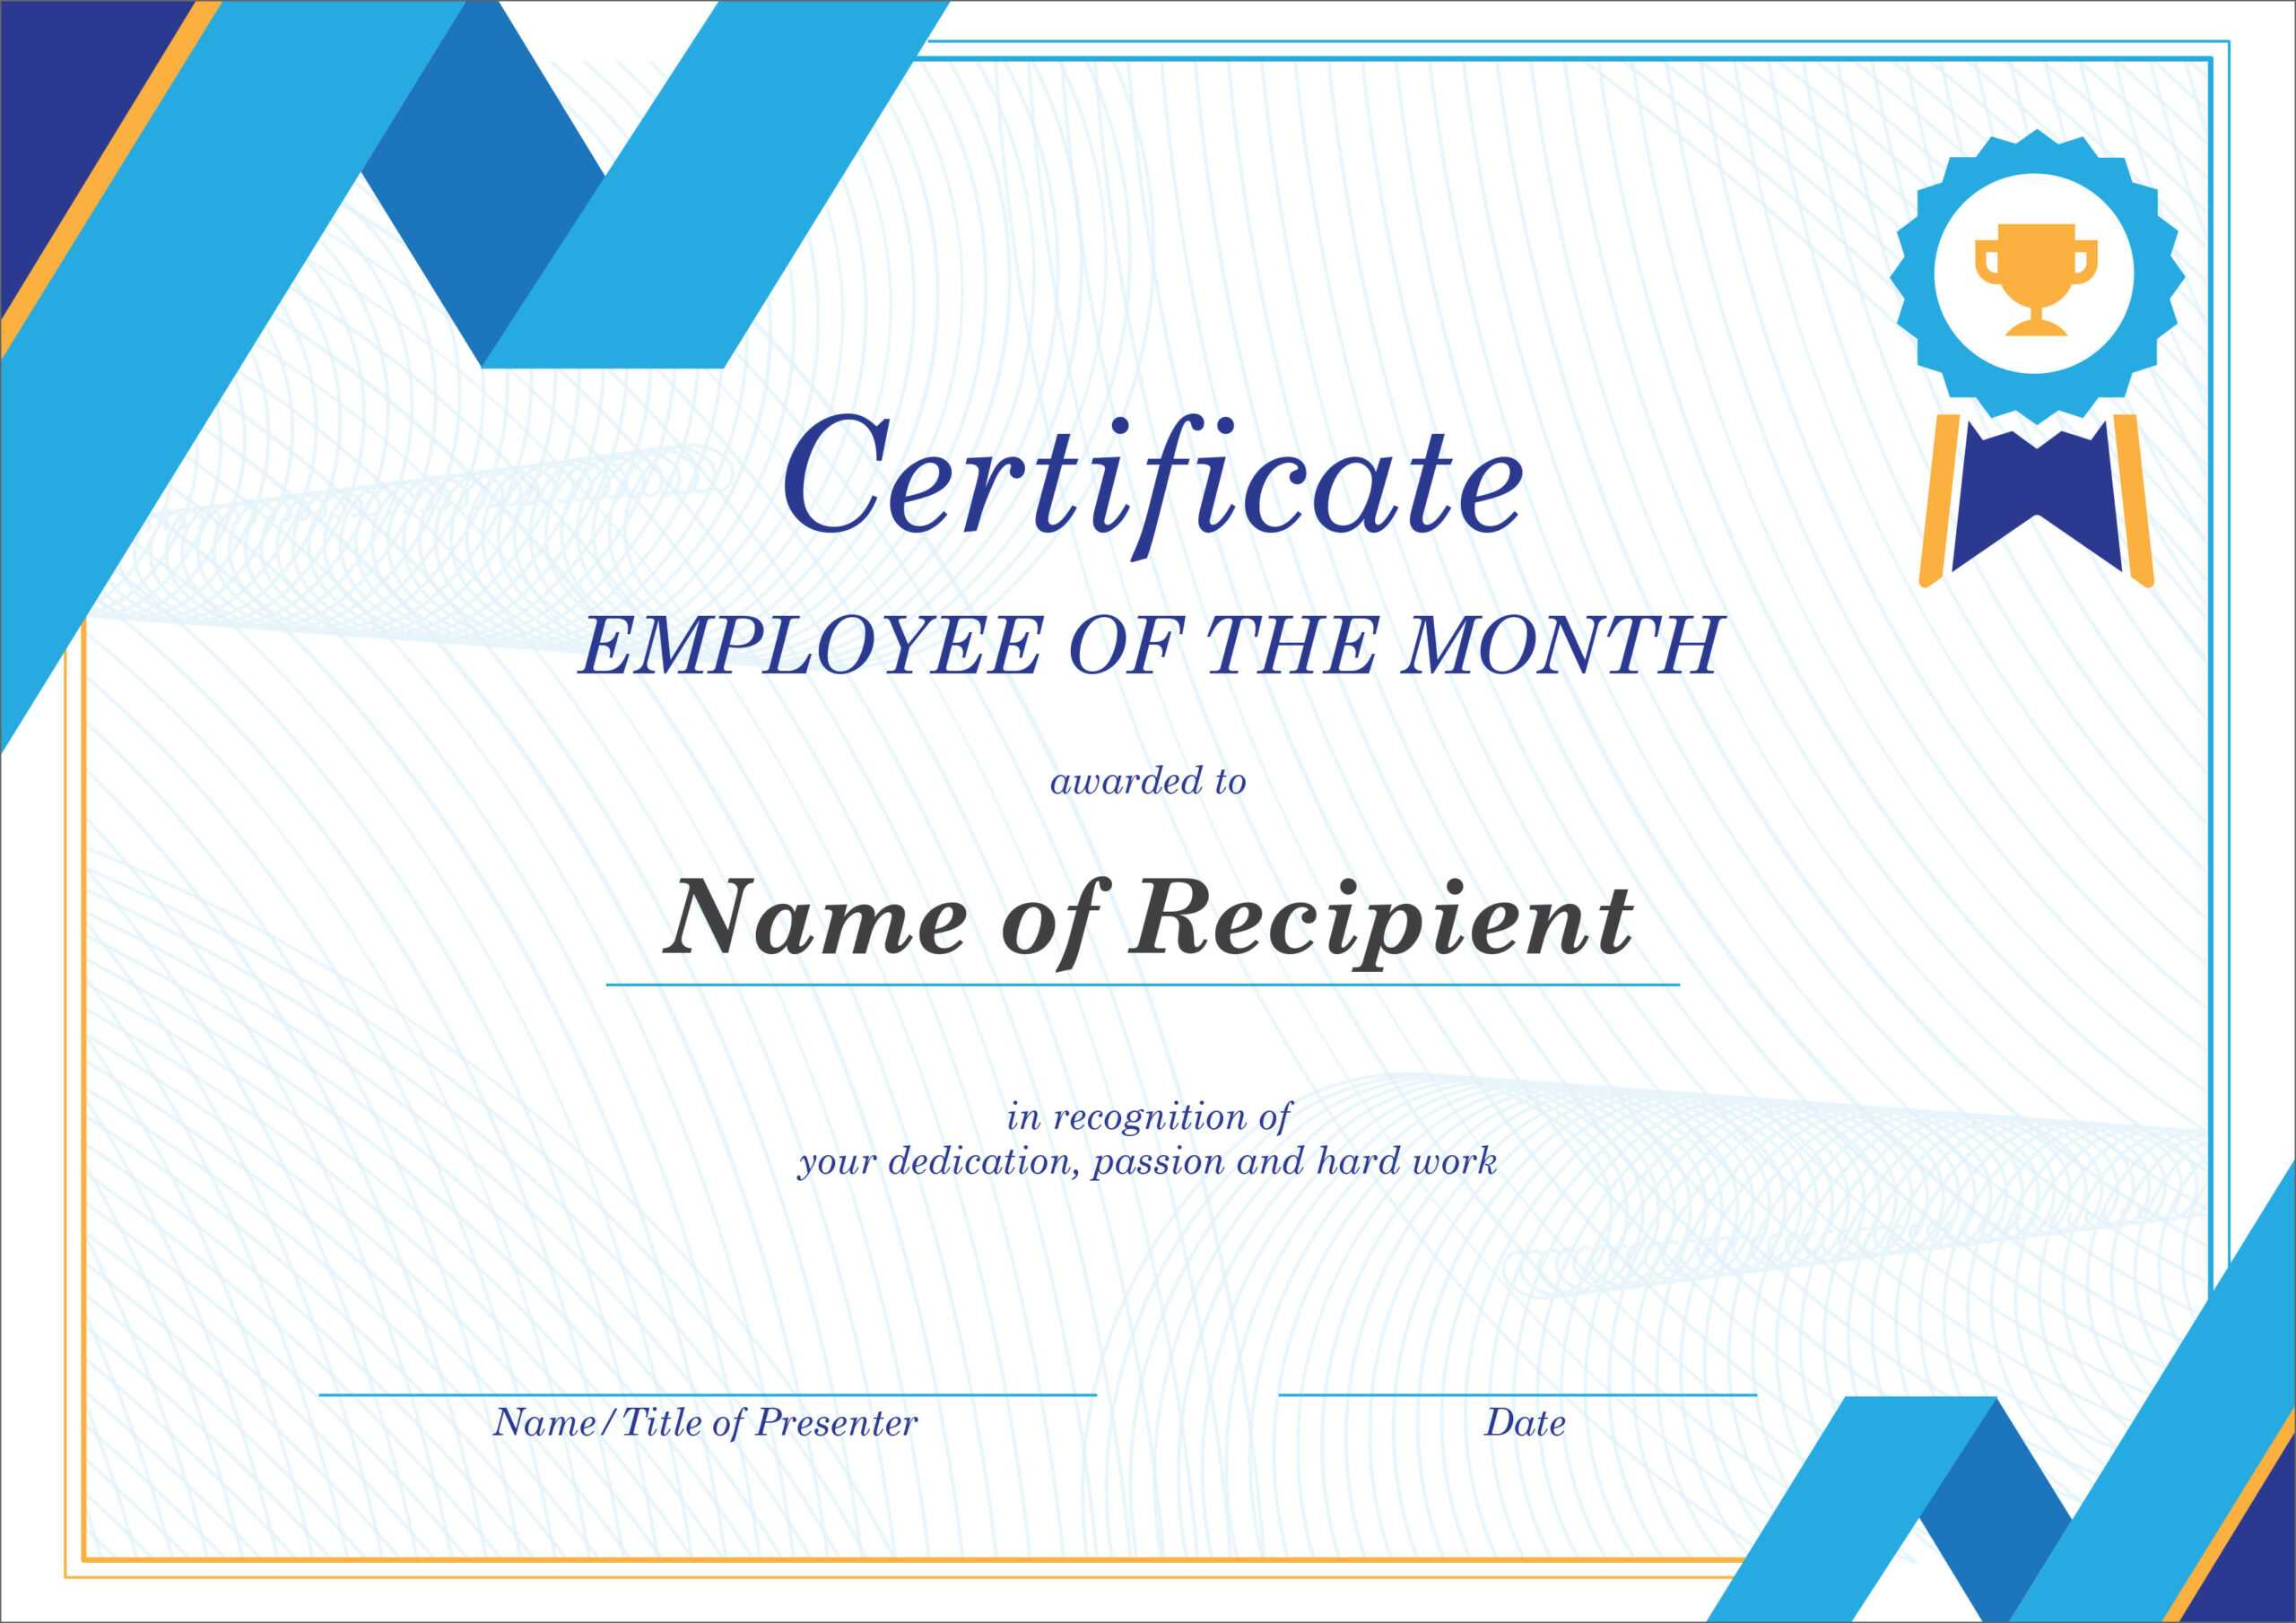 50 Free Creative Blank Certificate Templates In Psd With Regard To Employee Anniversary Certificate Template